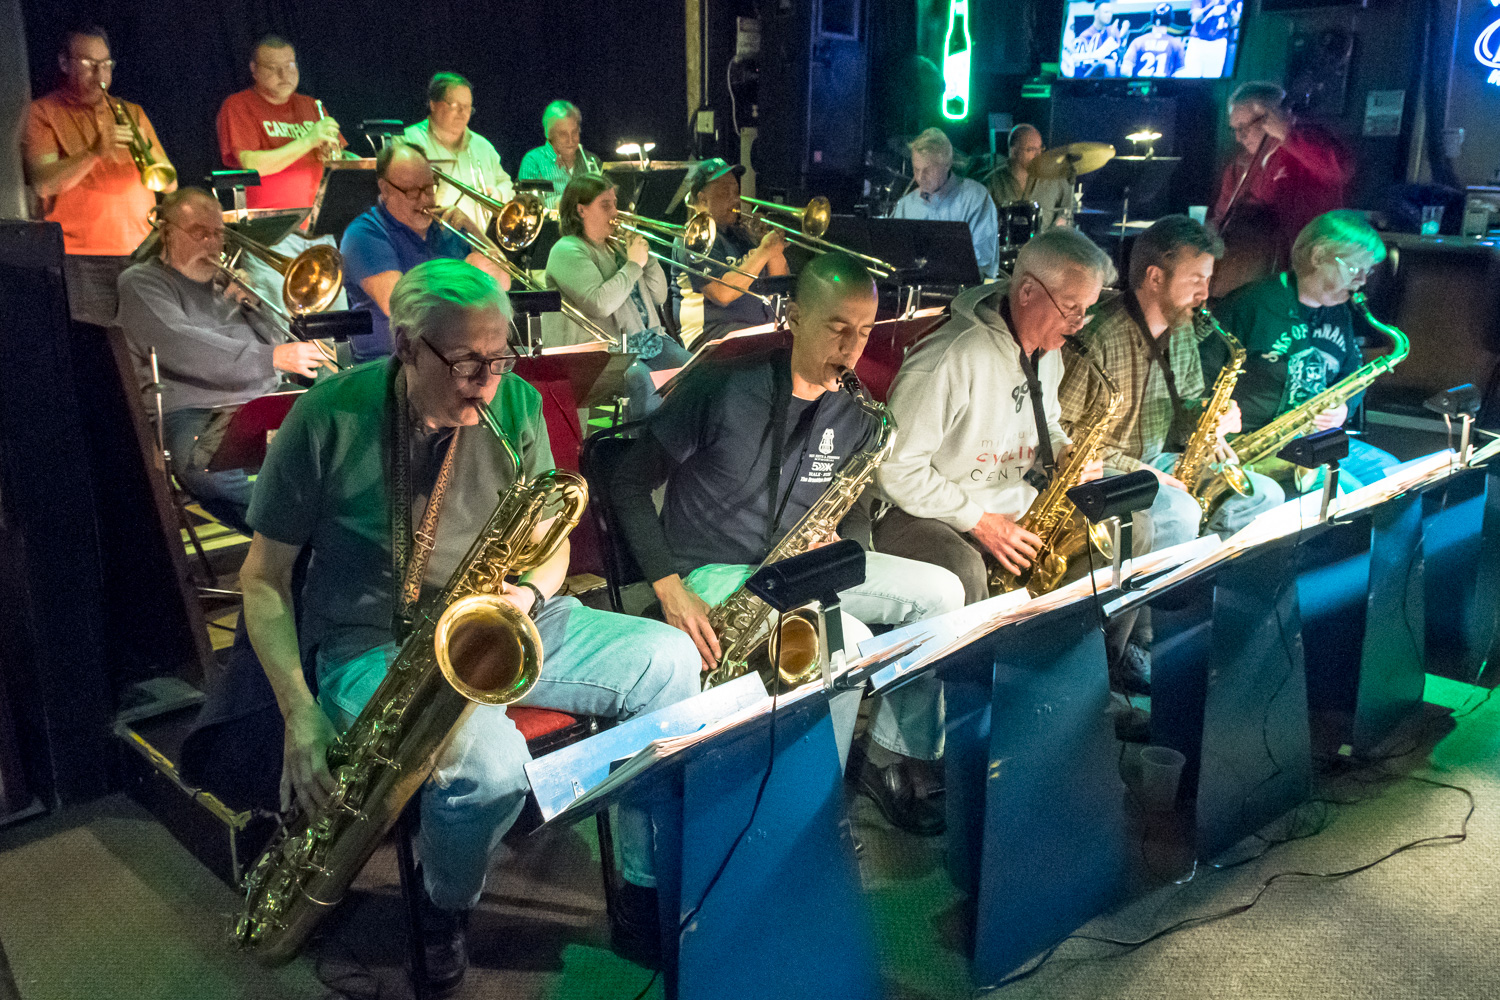 The Parkside Reunion Big Band performs every other Tuesday from 8-10 p.m. at McAuliffe's Pub in Racine's Georgetown neighborhood.